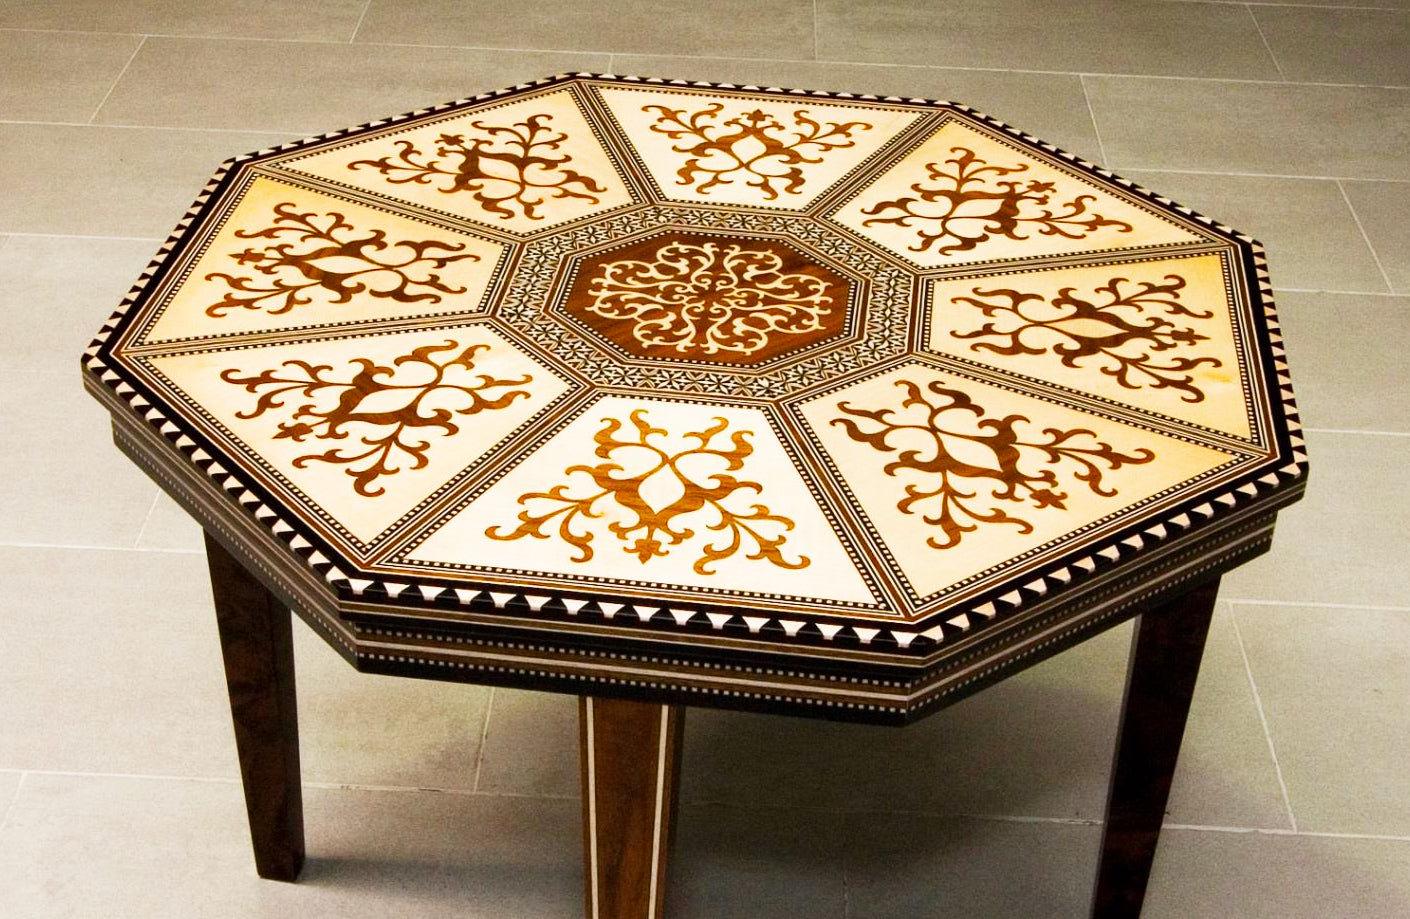 intarsia table top